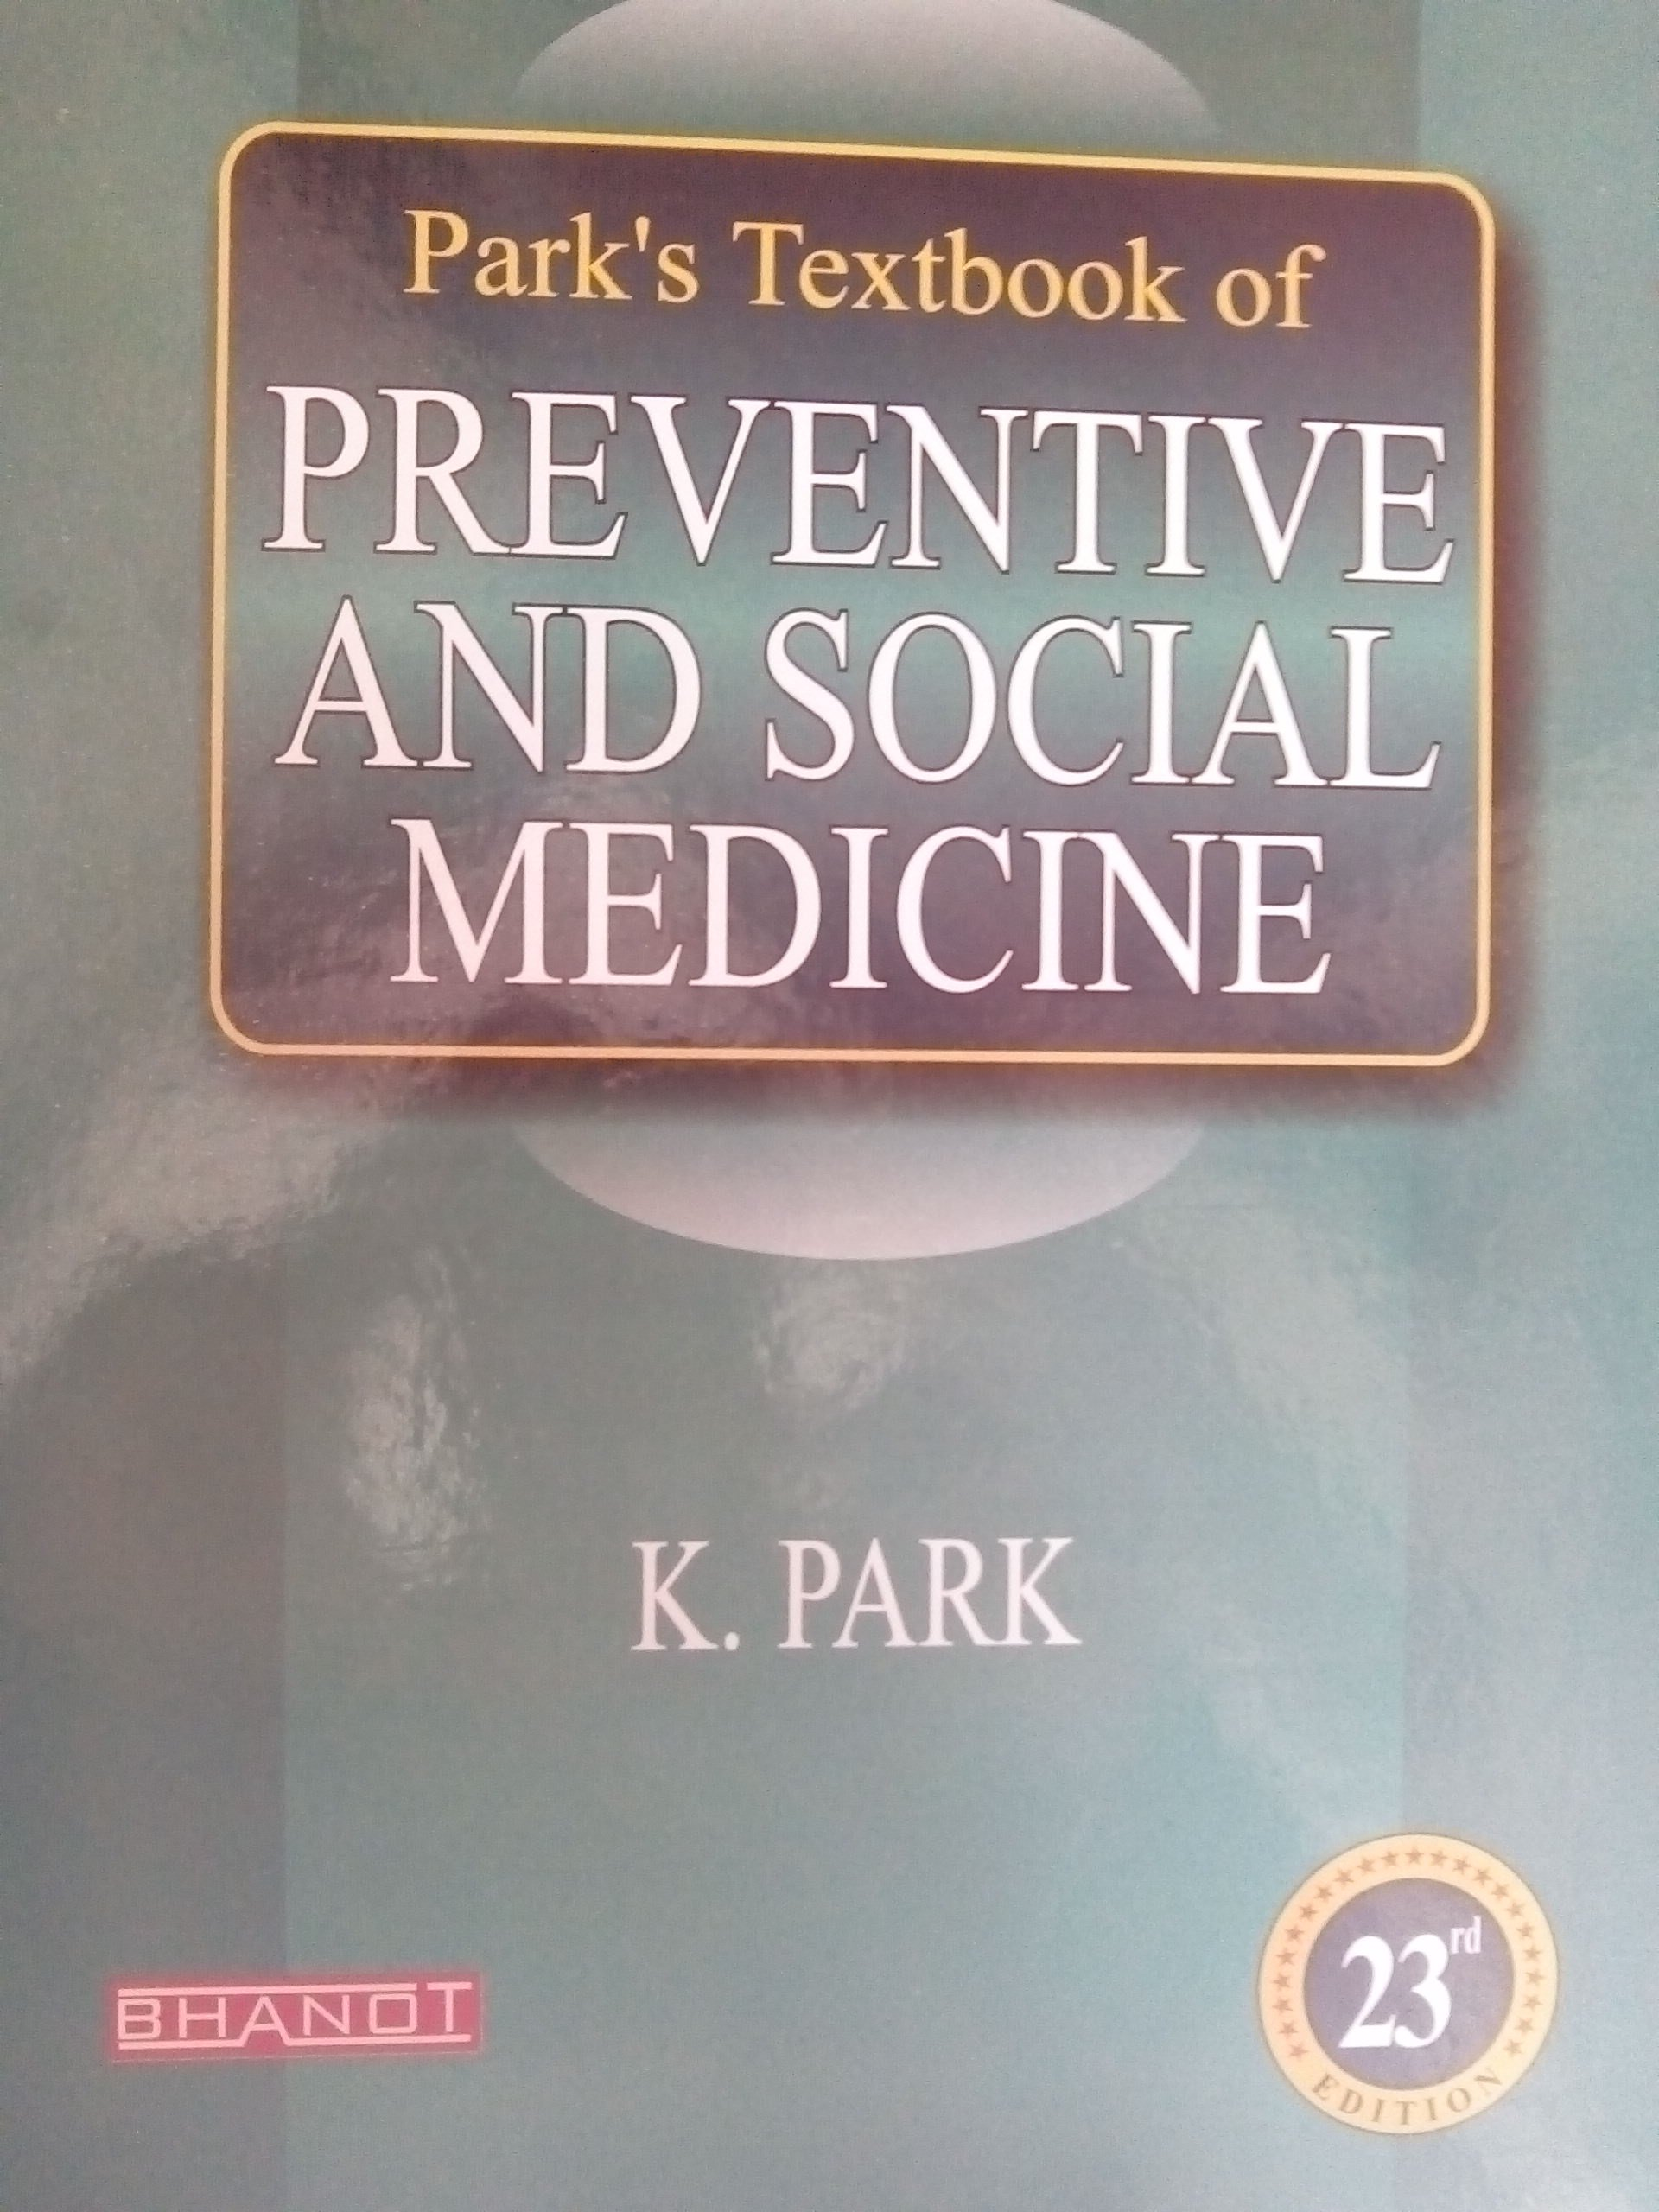 Park textbook of preventive and social medicine 23rd edition park park textbook of preventive and social medicine 23rd edition park psm park 9789382219057 amazon books fandeluxe Choice Image